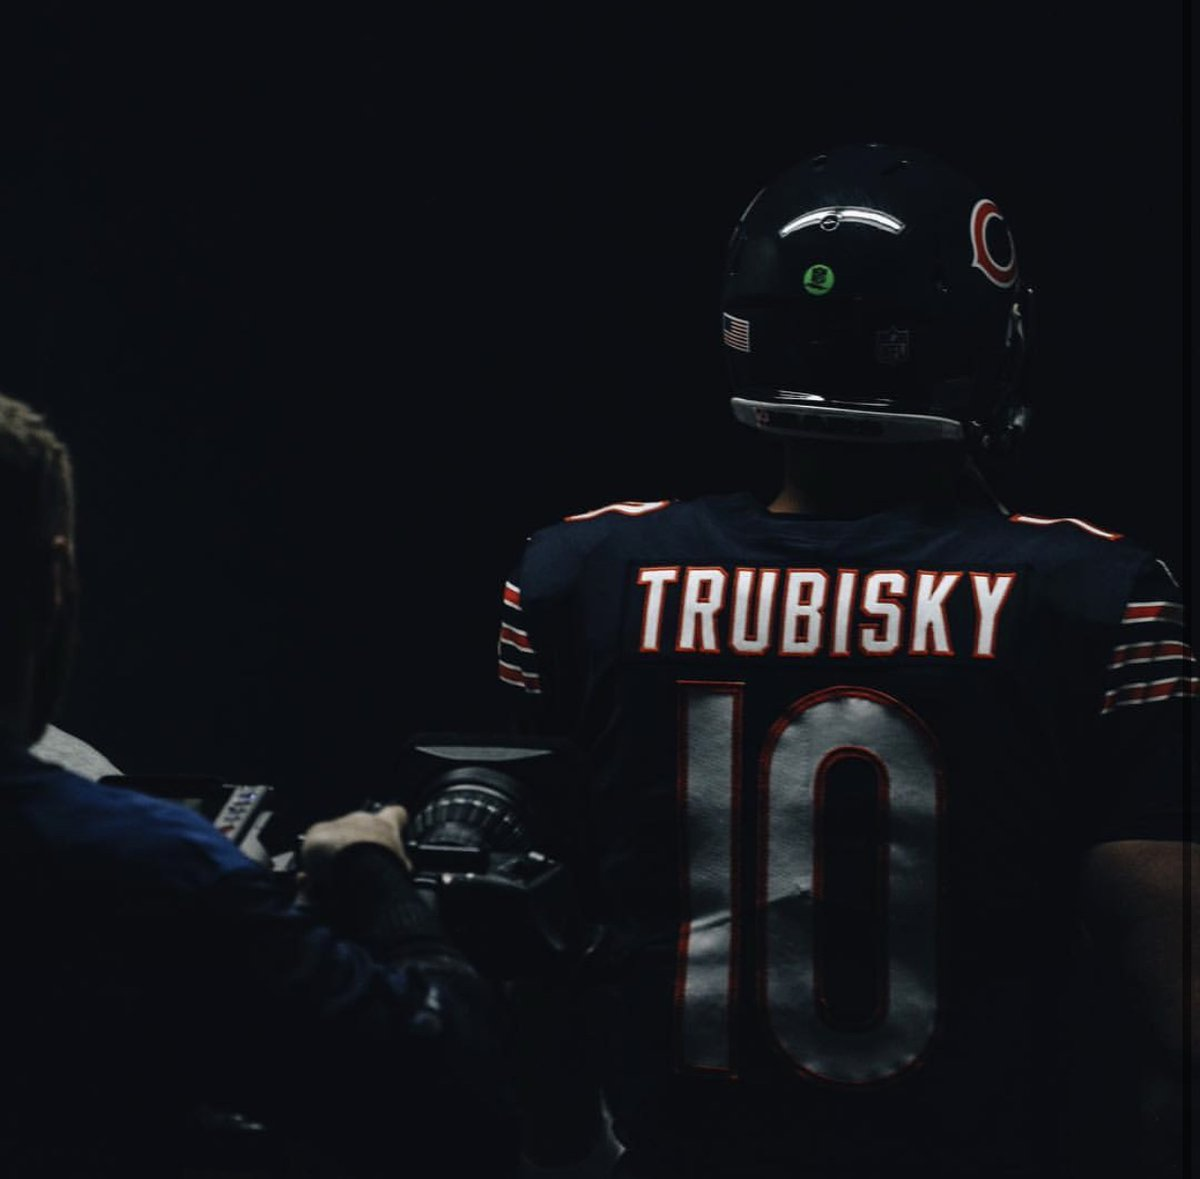 Did we write off Mitchell Trubisky too early?  Short answer: Yes, yes we did. https://sportsmockery.com/2019/12/did-we-write-off-mitchell-trubisky-too-early/ …